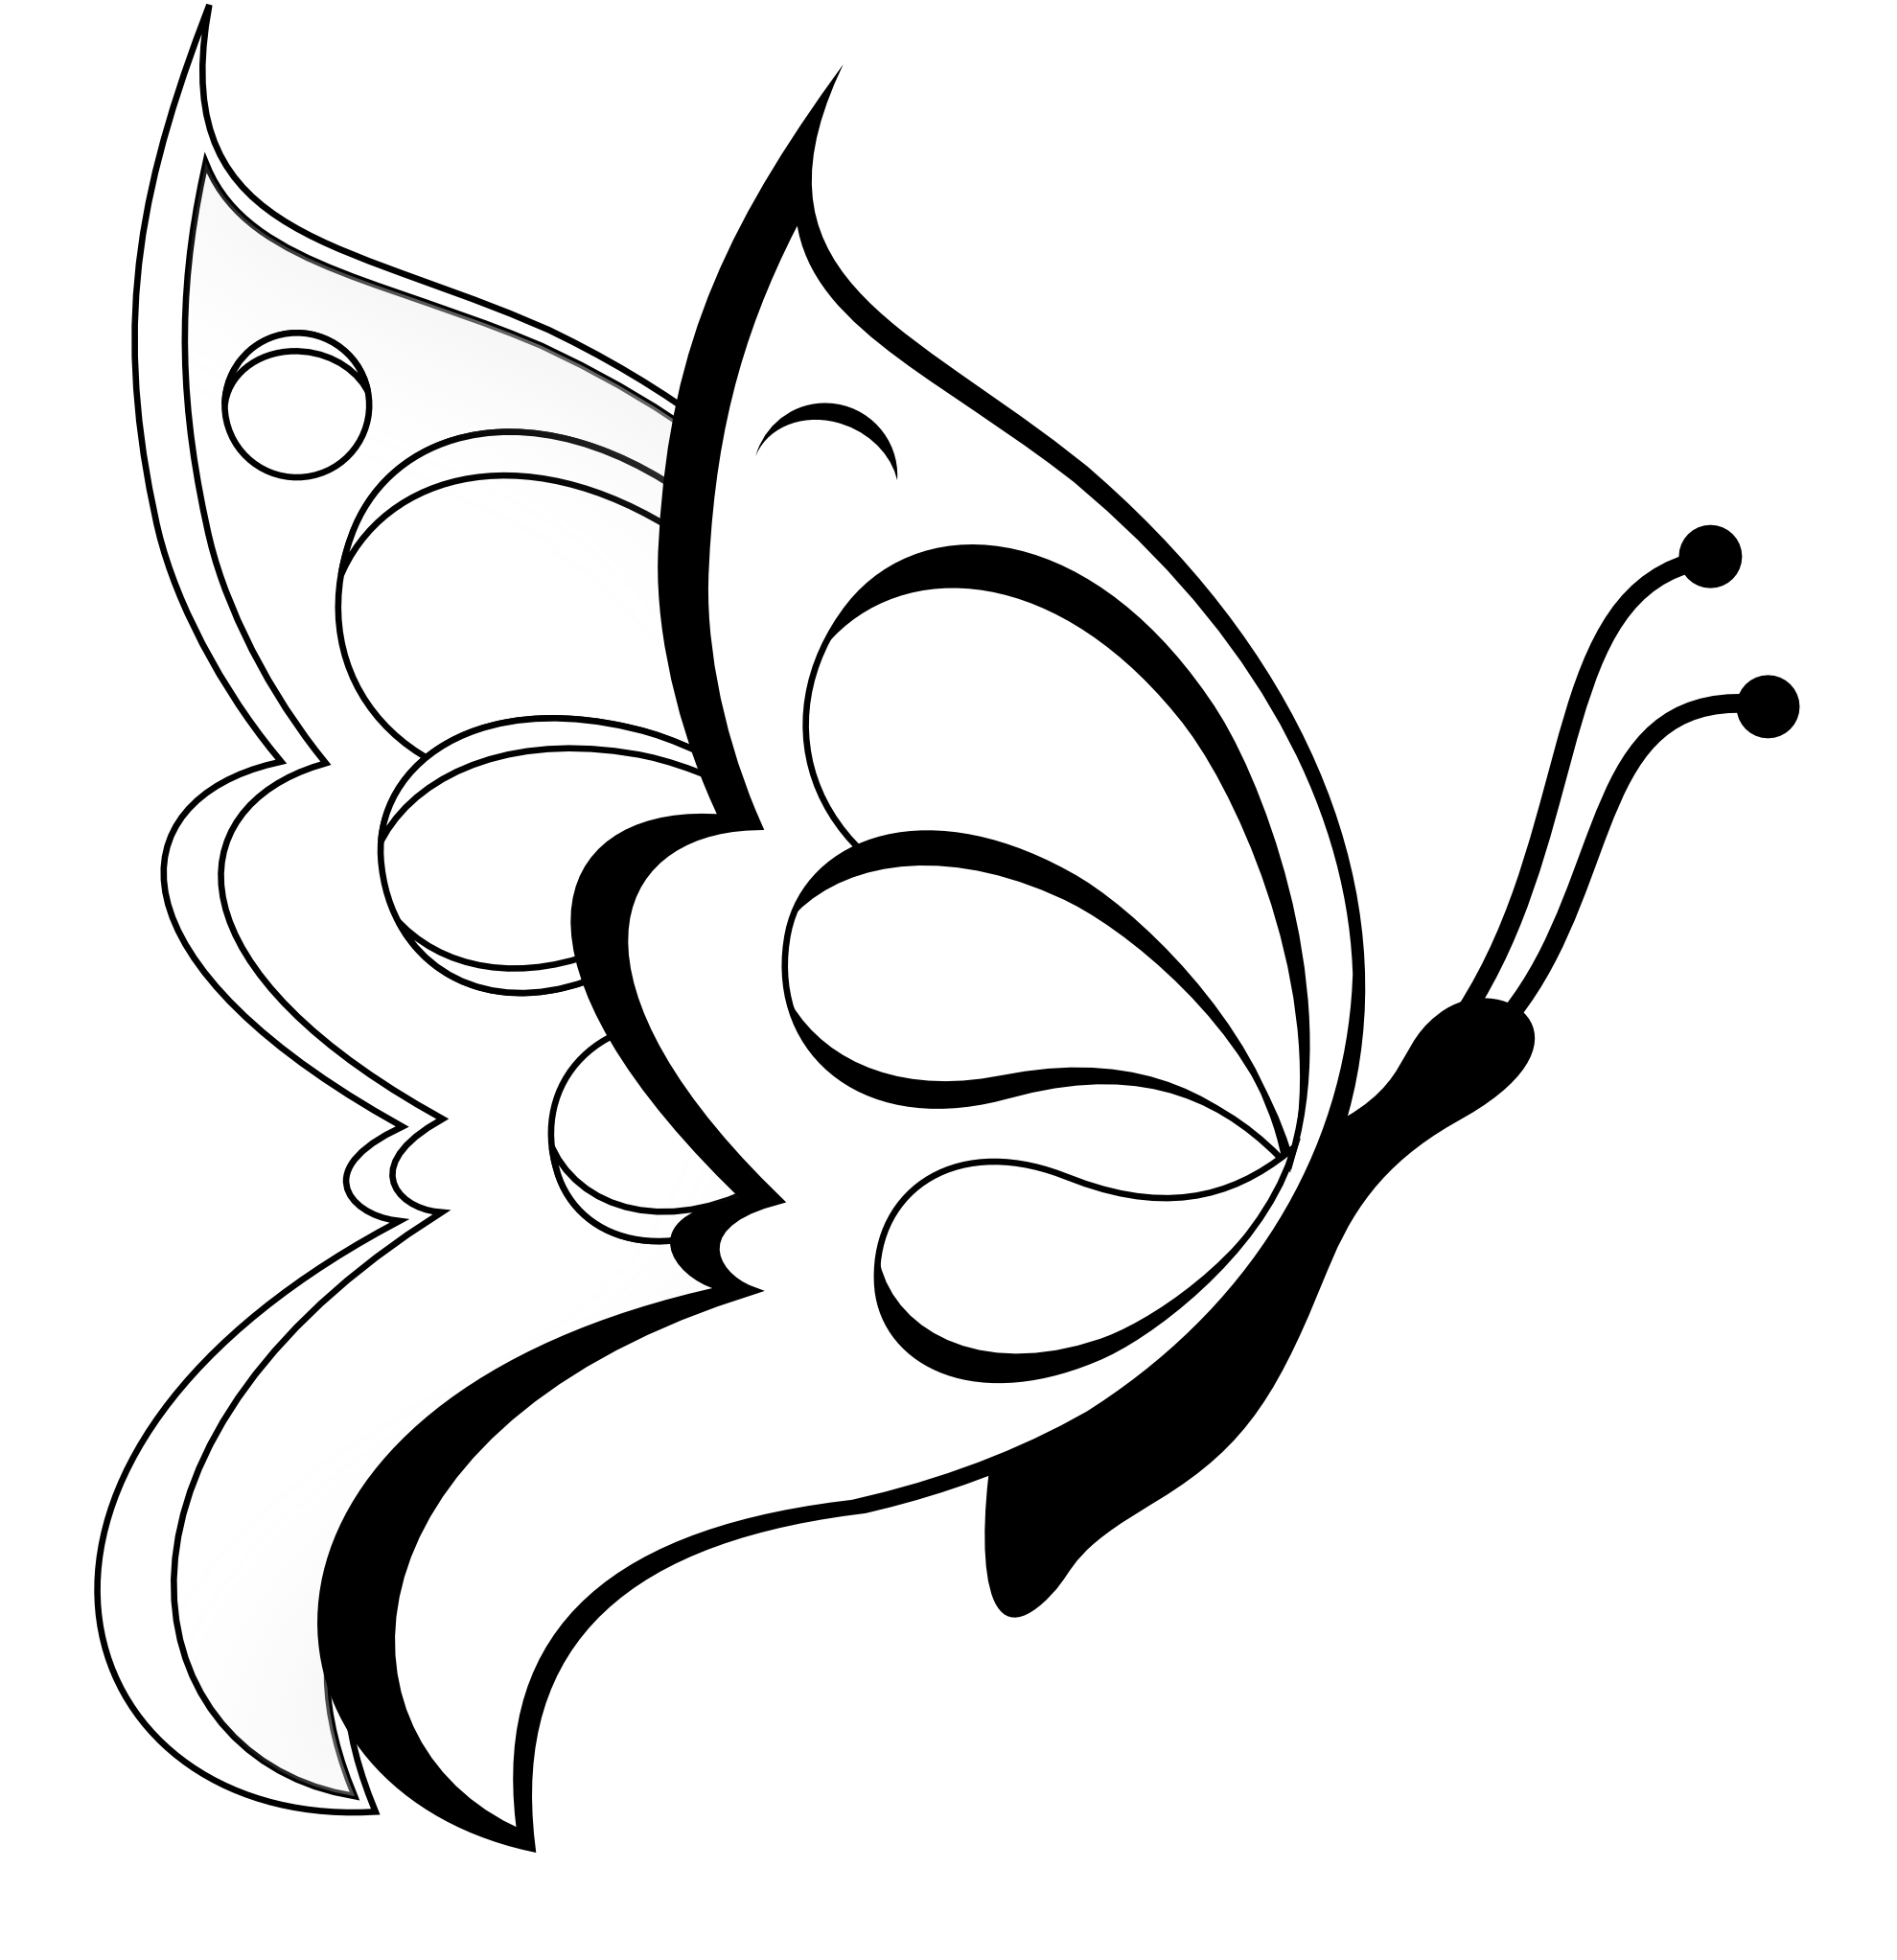 hight resolution of butterfly clipart butterfly 19 black white line art coloring sheet colouring page